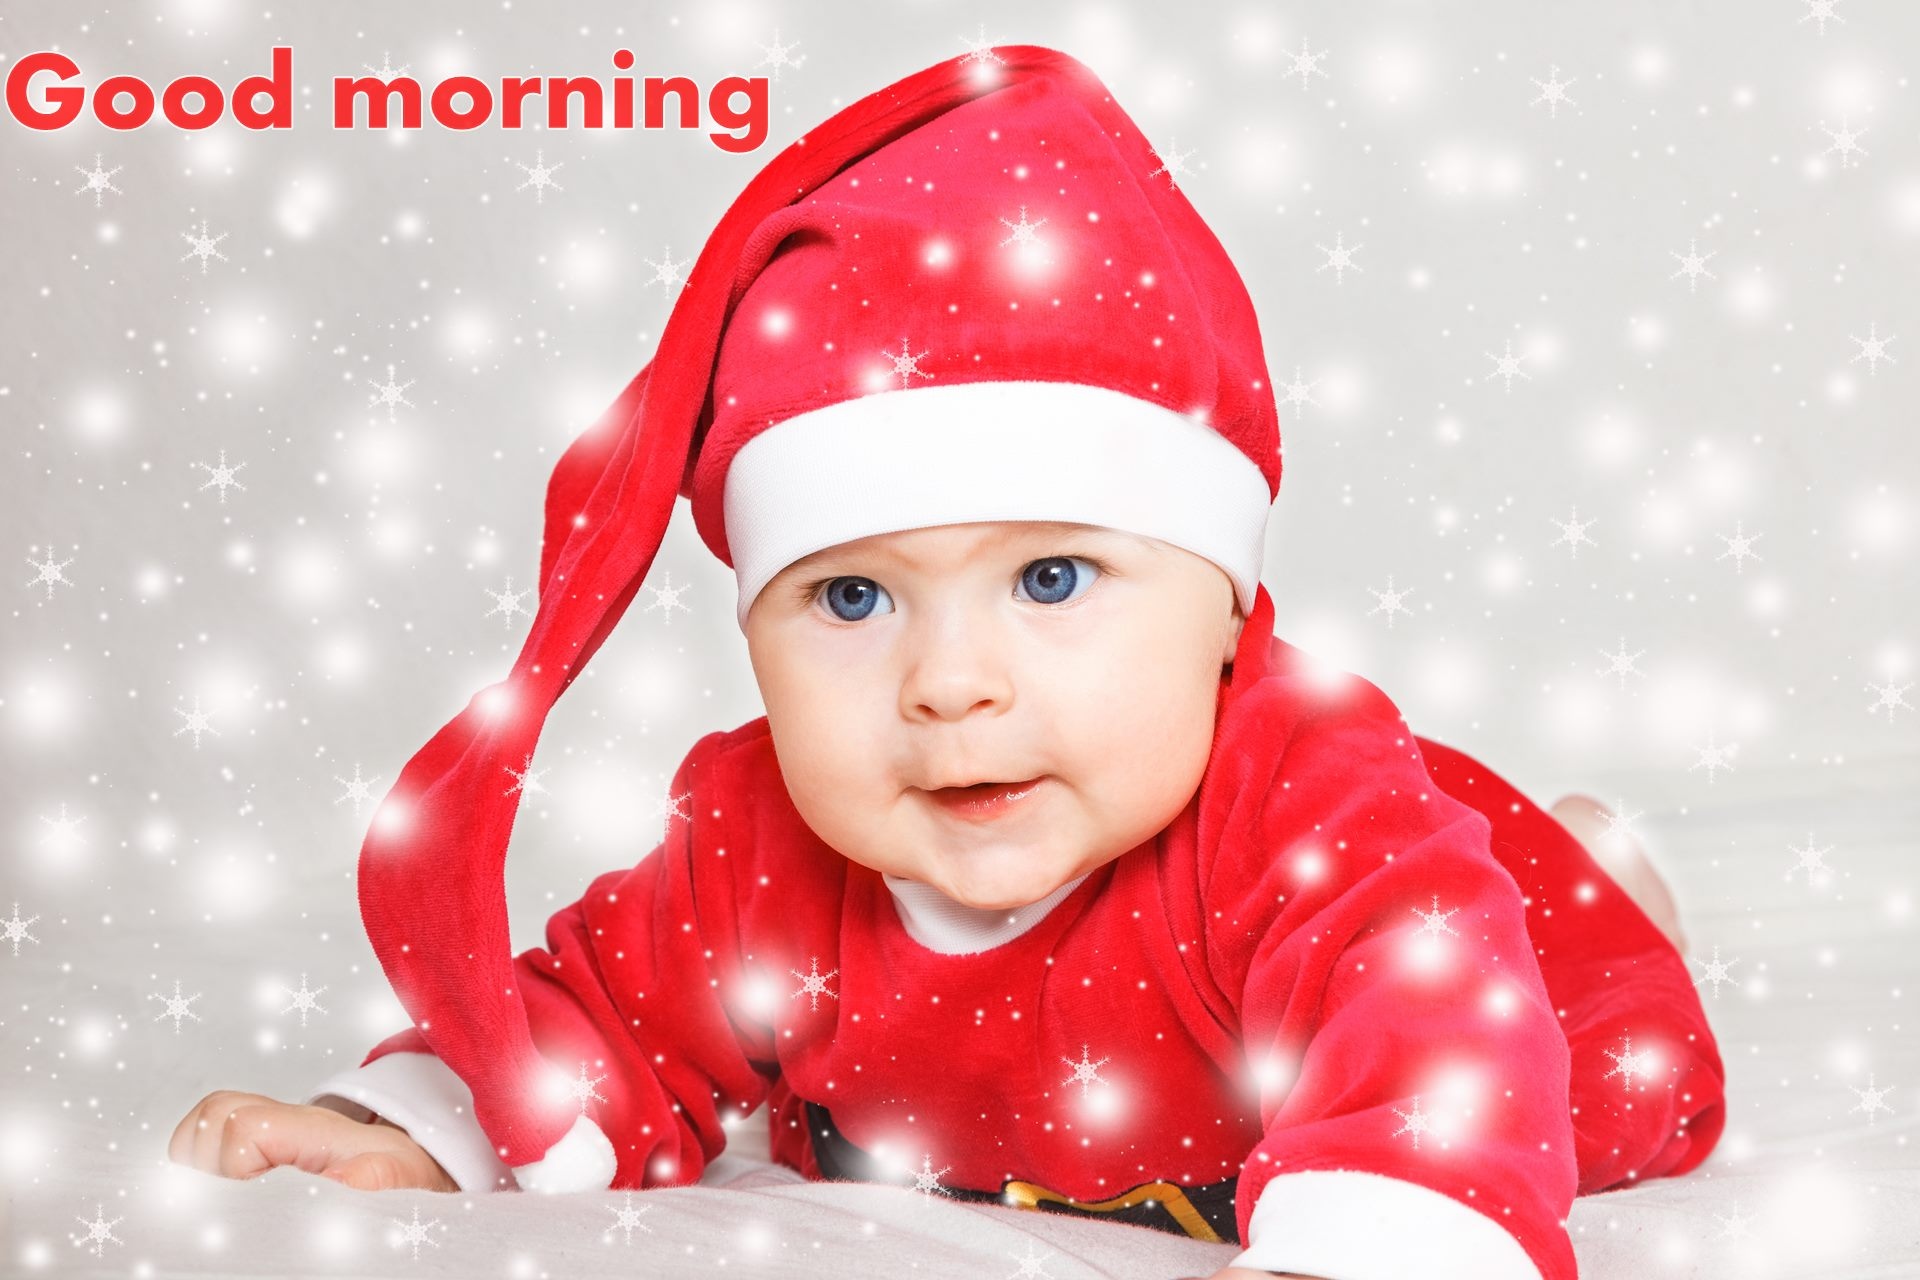 Good Morning Wishes With Baby Pictures, Images - Page 24